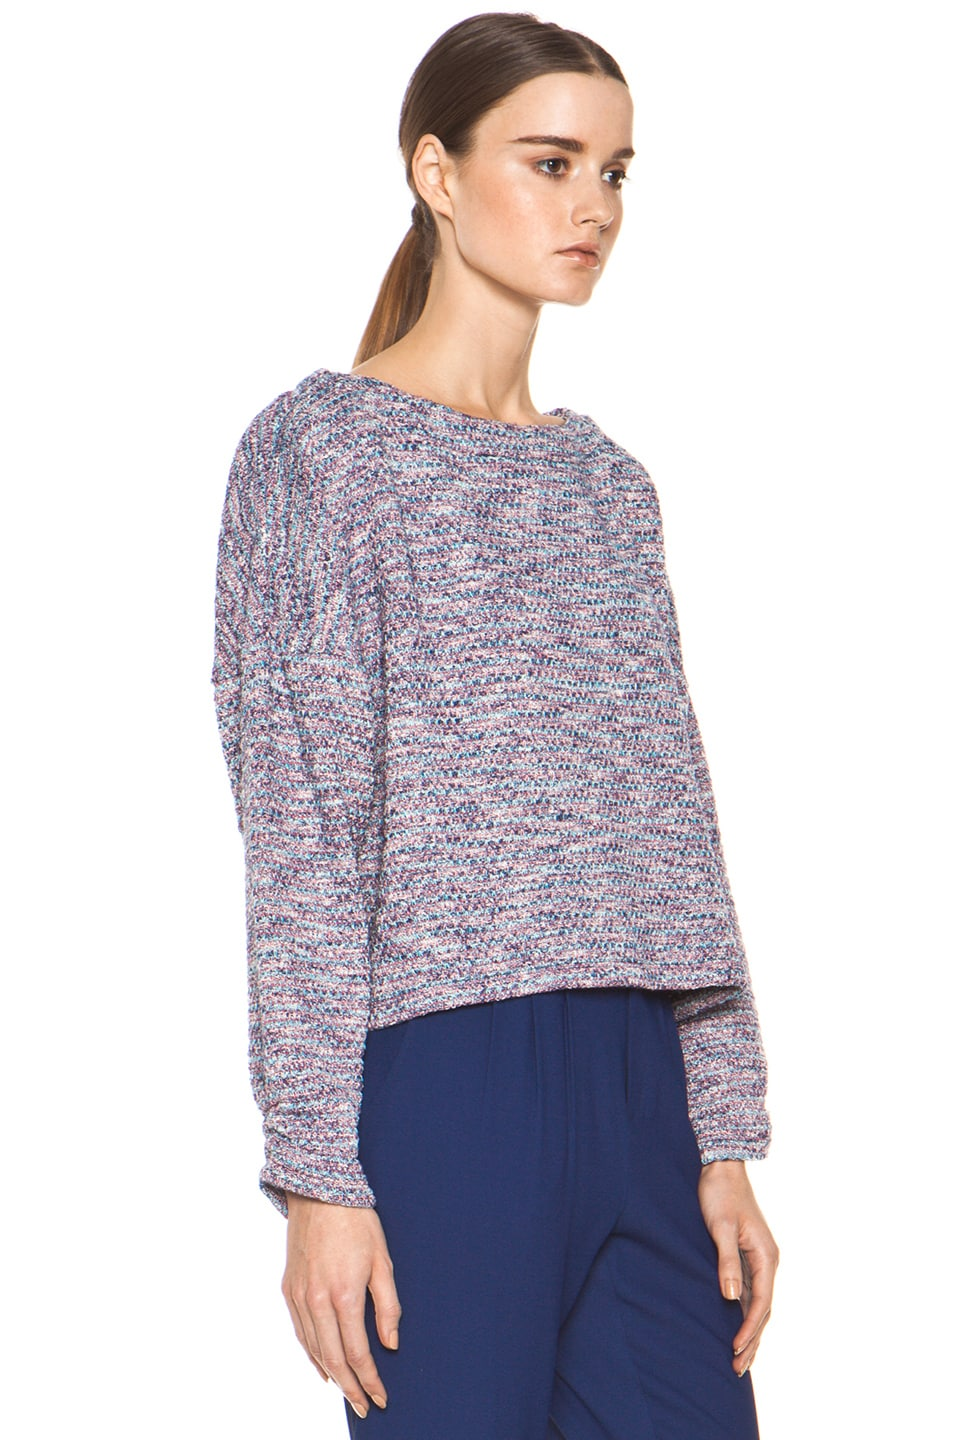 Image 4 of Girl. by Band of Outsiders Knit Tweed Sweater in Multi